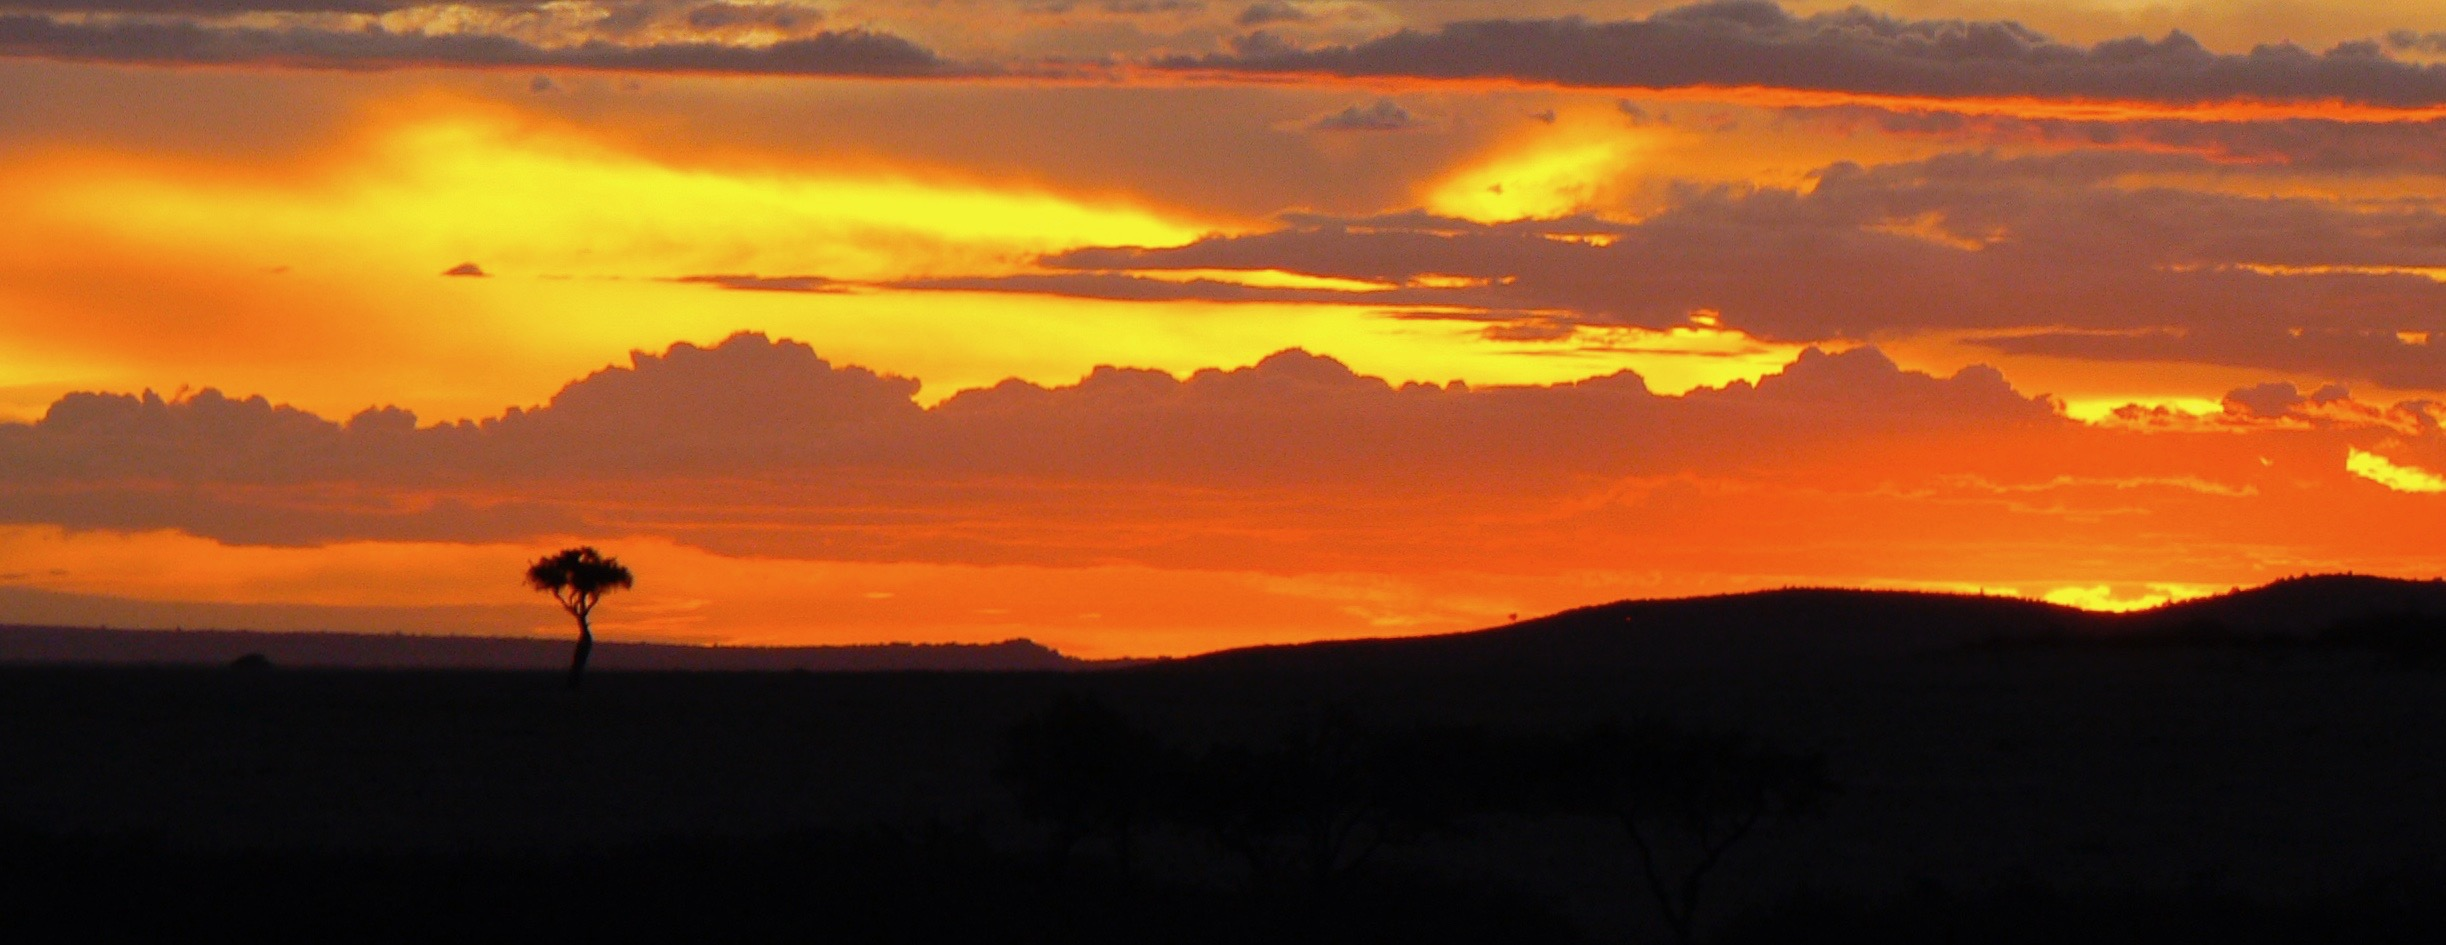 Sunset in the Masai Mara National Reserve